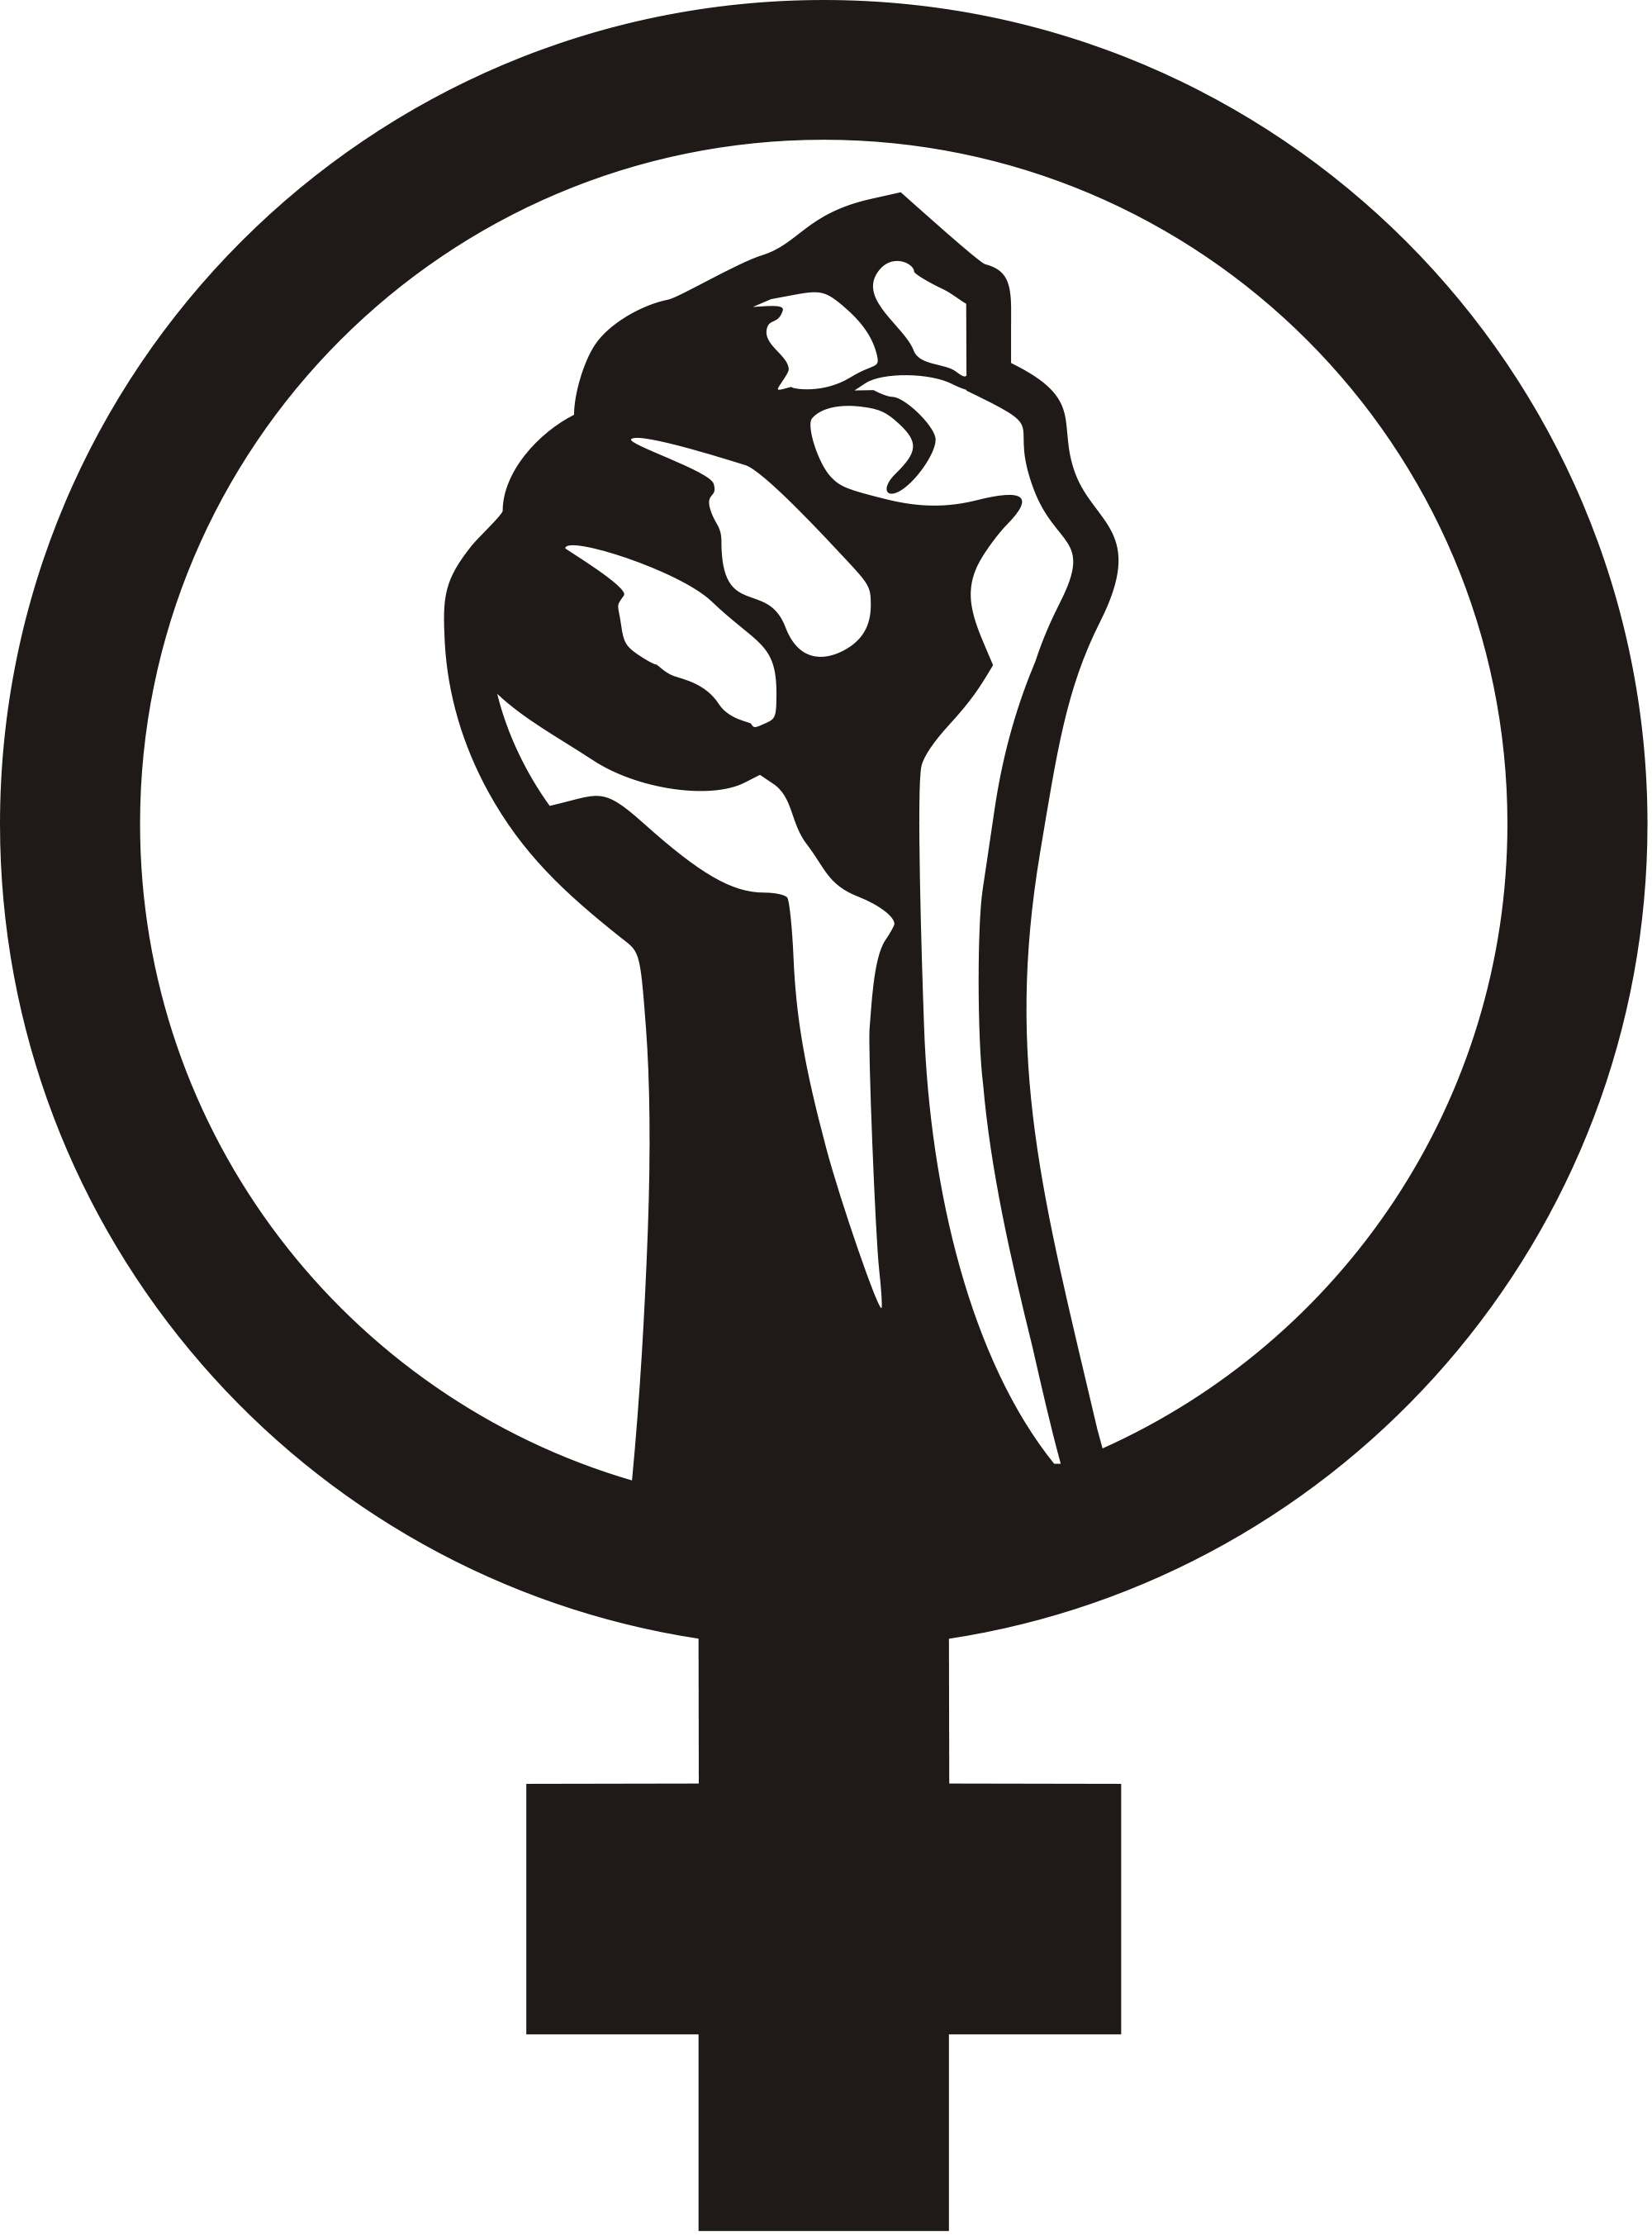 Protest vector feminism. Tg traditional games thread